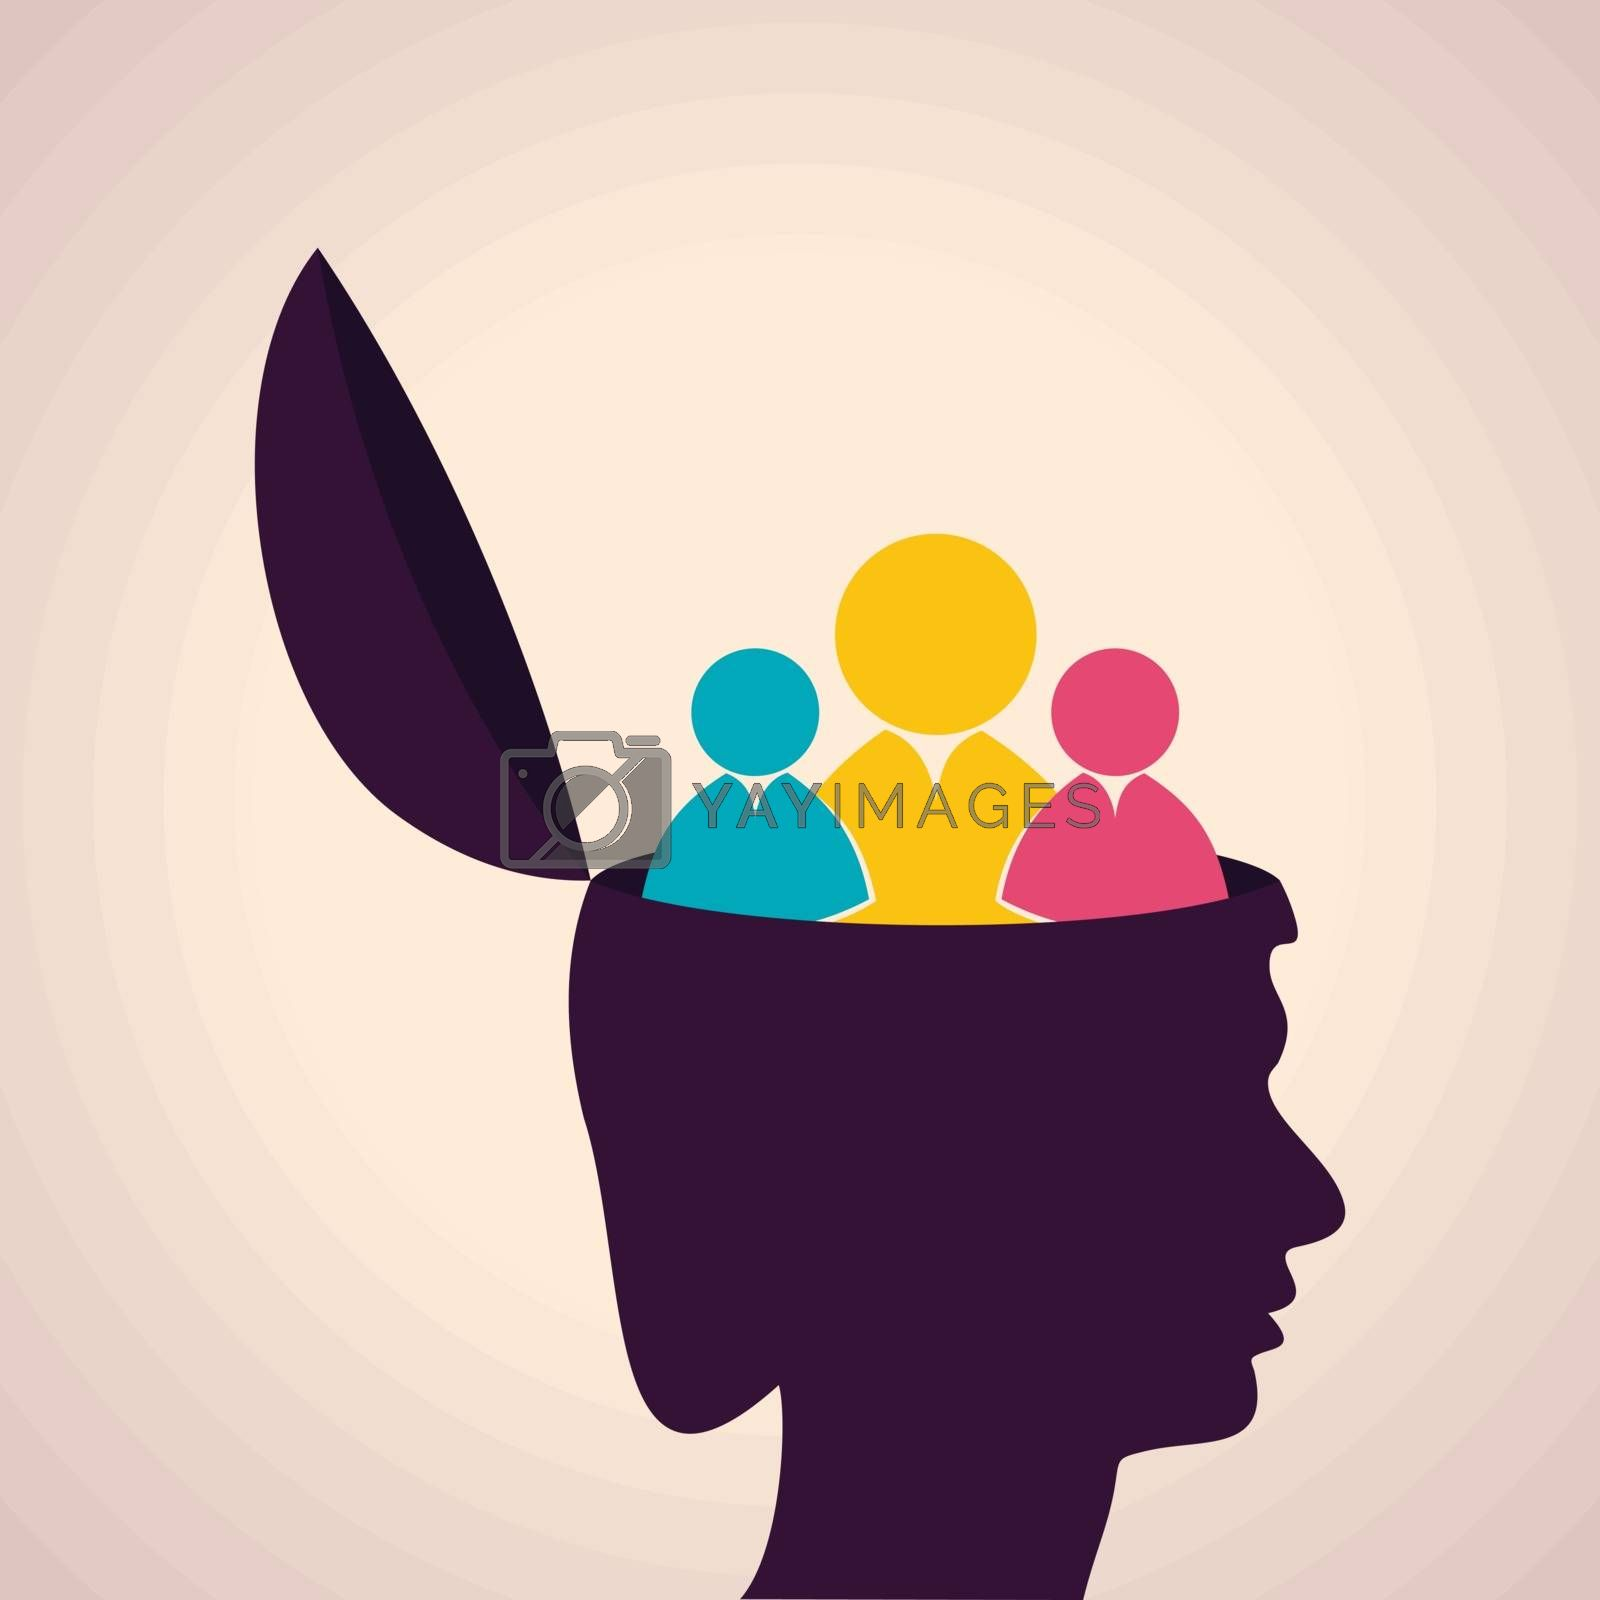 Illustration of thinking concept-Human head with people icon